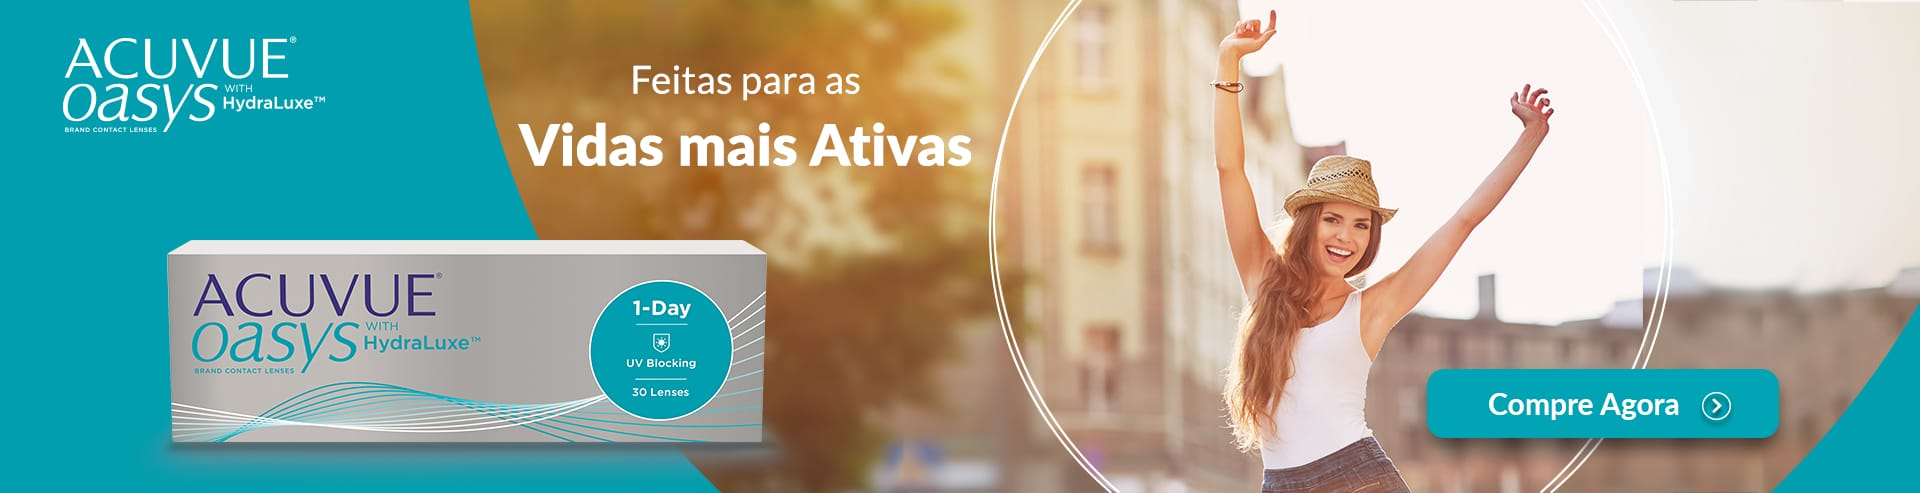 As lentes de contacto Acuvue Oasys 1-Day feitas para as vidas mais ativas